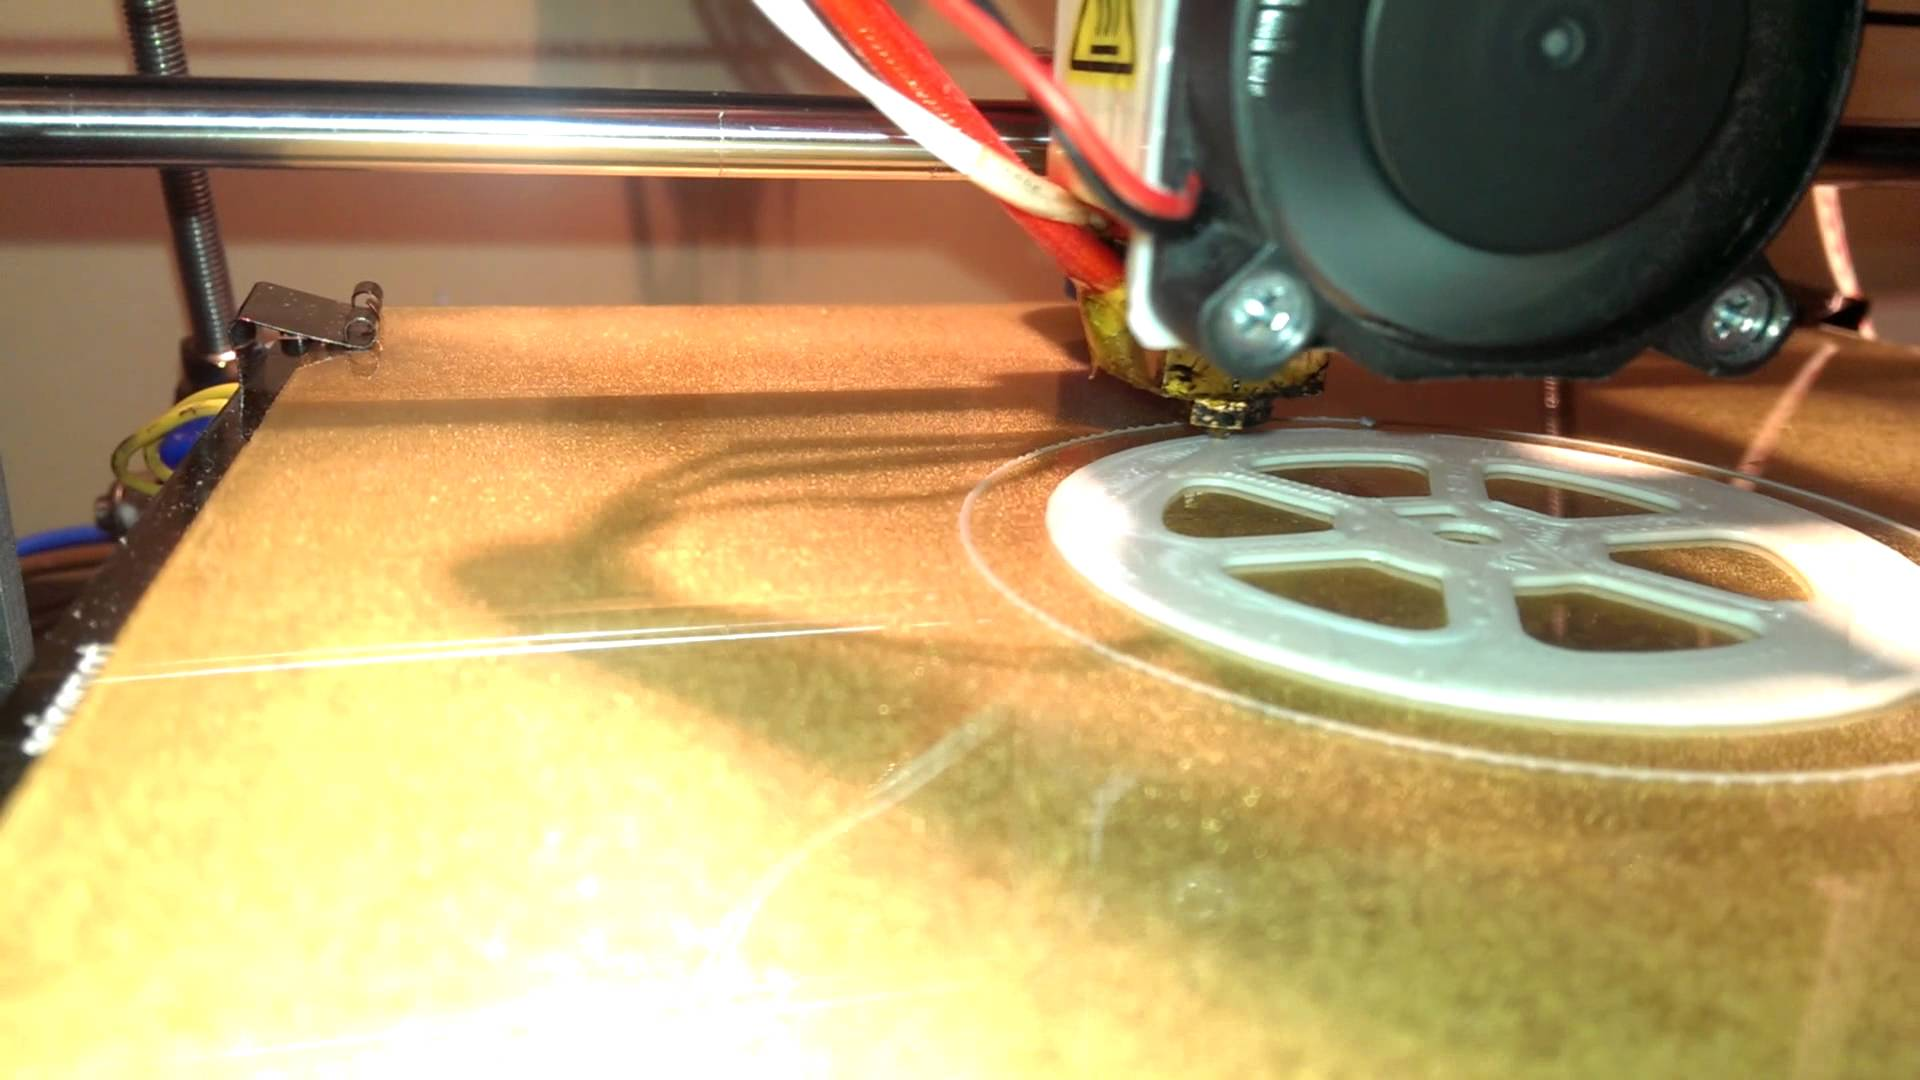 PEI Sheet & 3D Printing: How to Use It as a 3D Print Surface | All3DP